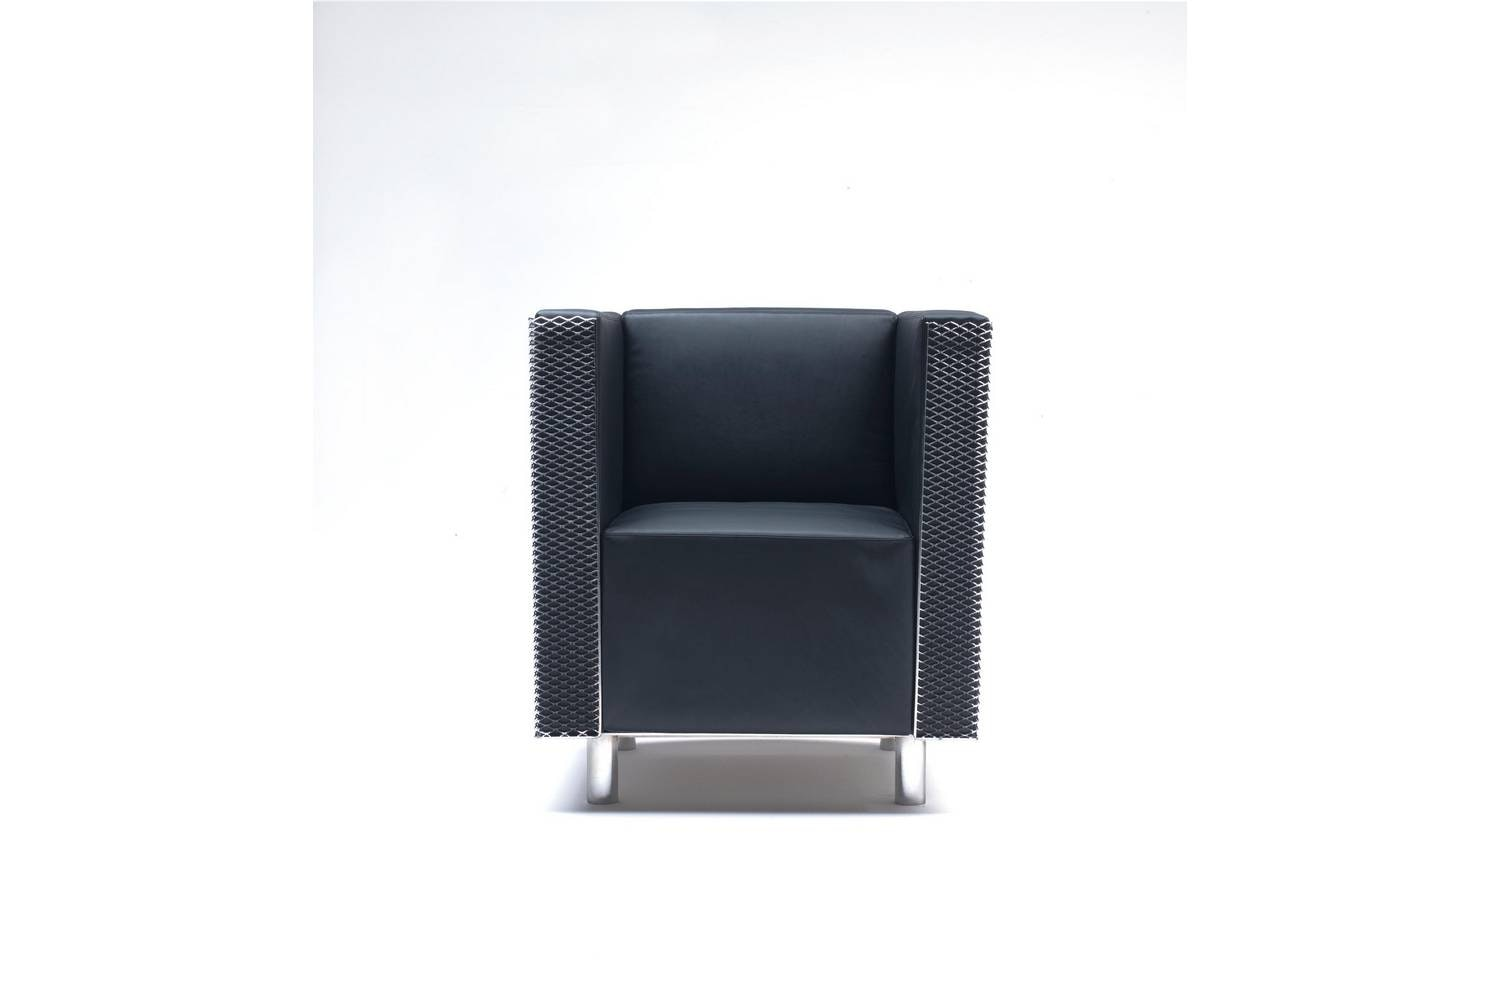 Bridgestone Armchair by Shiro Kuramata for Living Divani